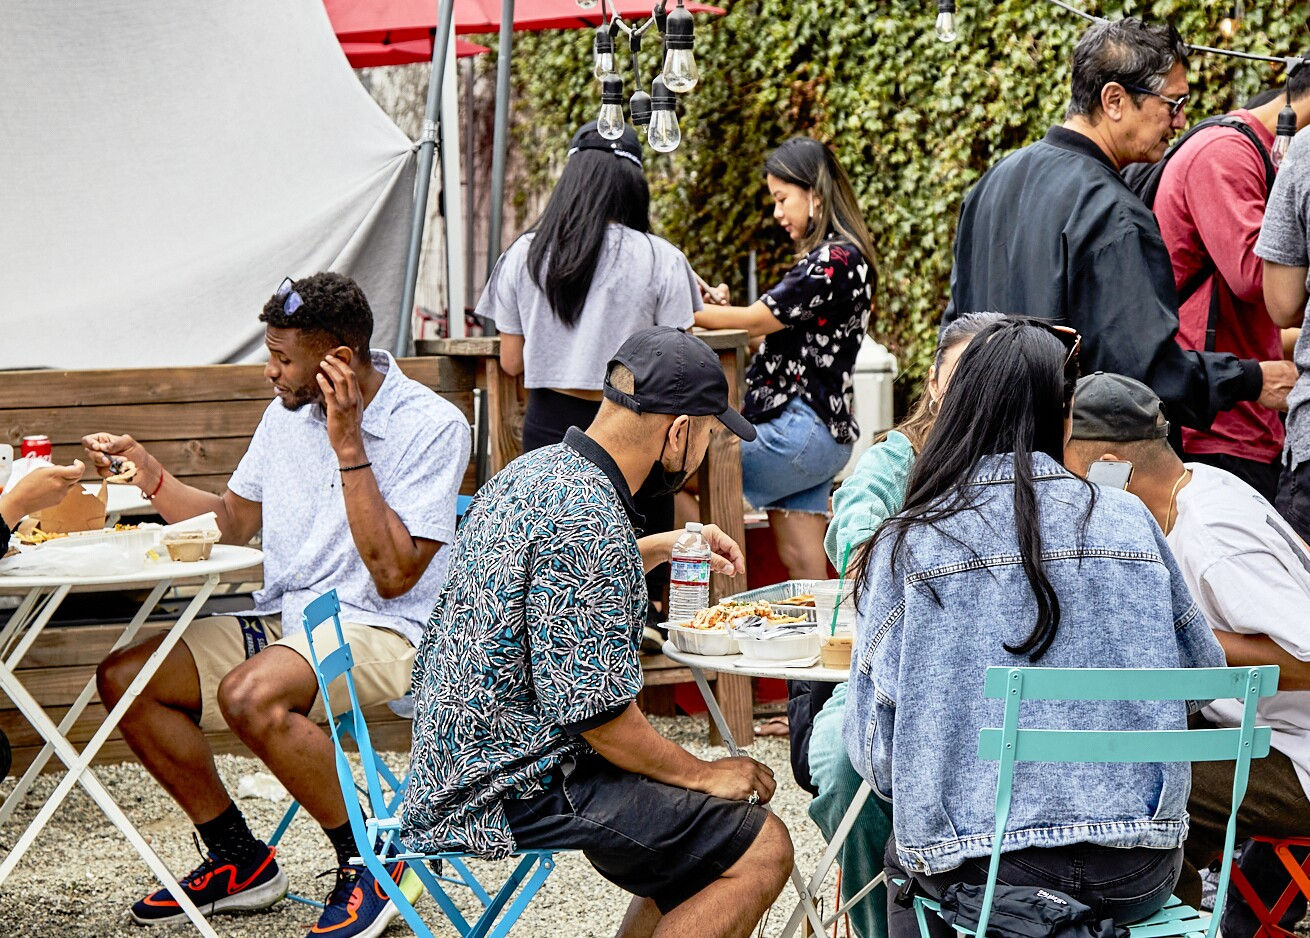 Attendees gather around outdoor tables to eat their purchases at the FilLed Market. Nearby is a tall wall covered in green vining plants.